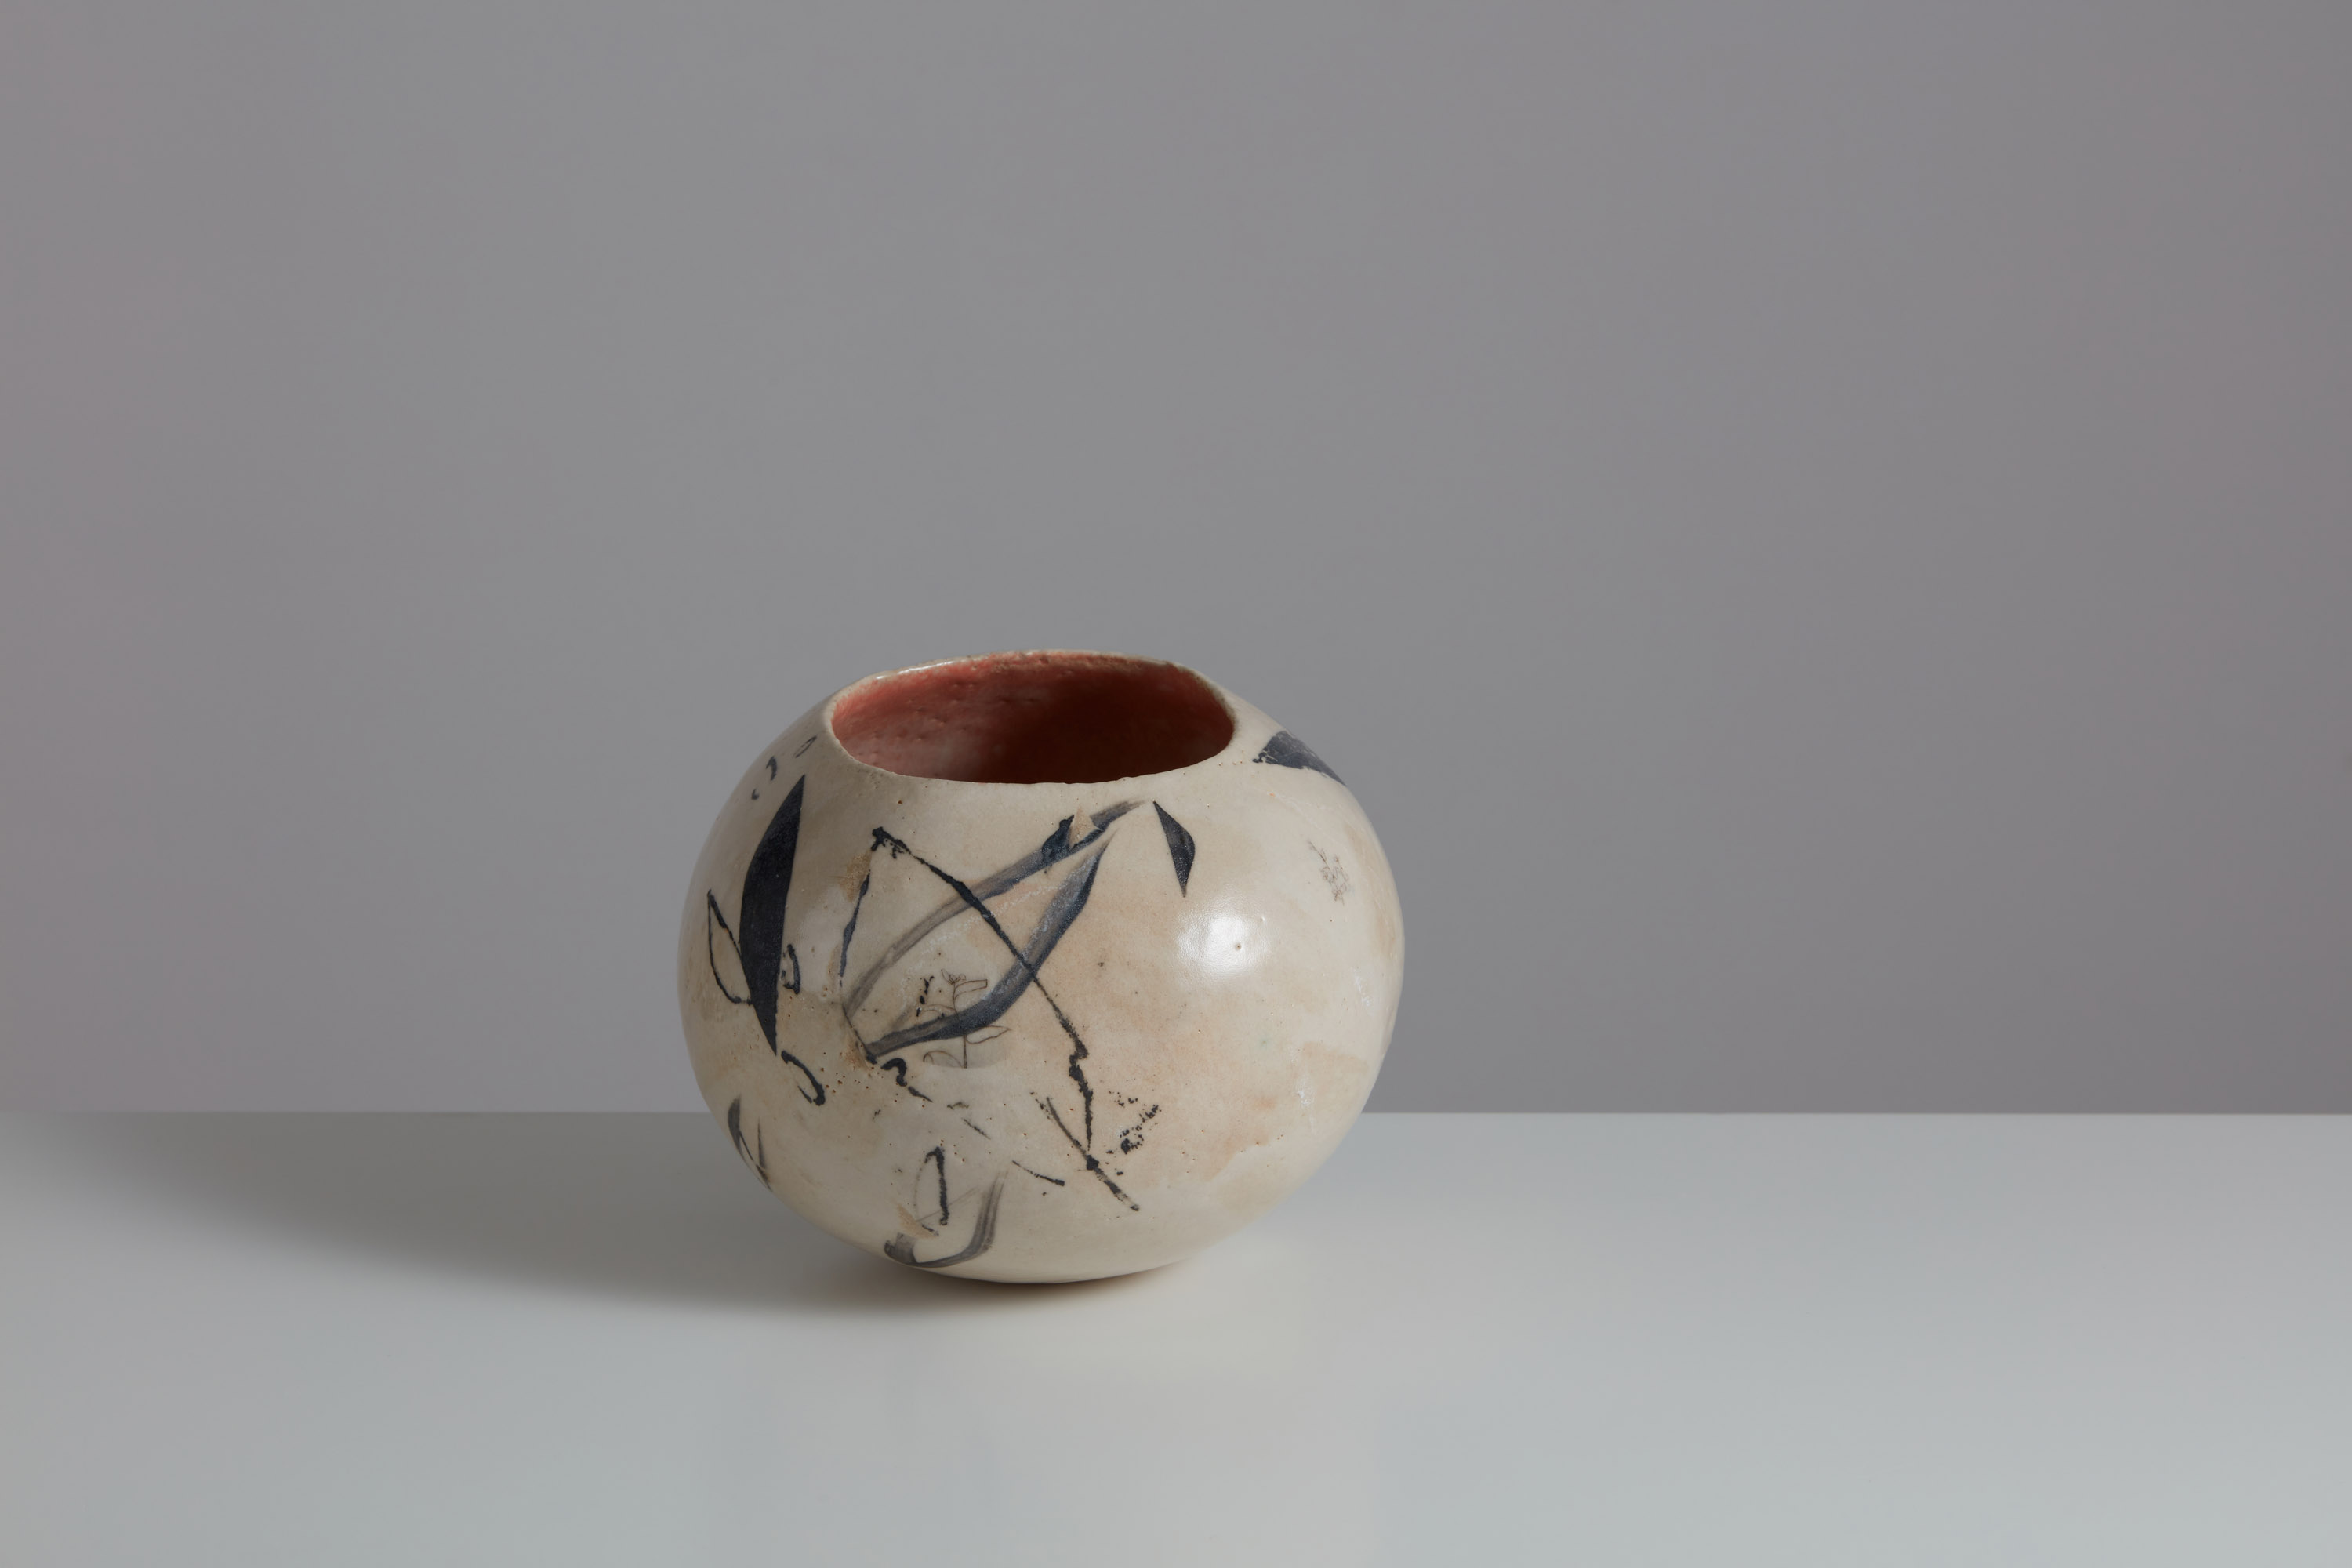 Bowl from 'Contained Flora' series